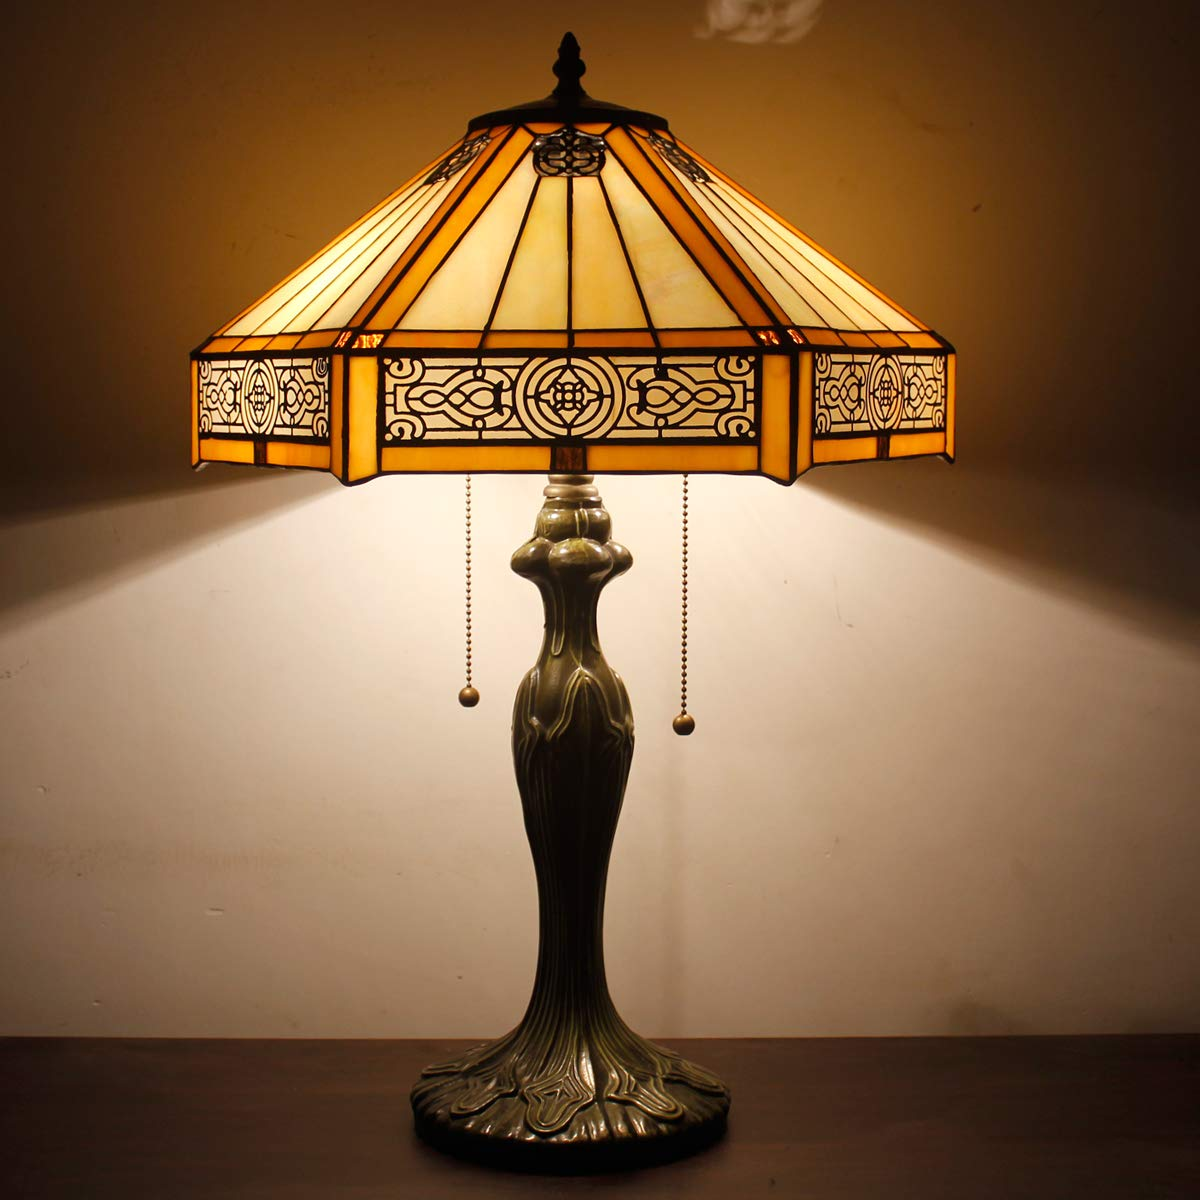 Tiffany Lamp Yellow Hexagon Stained Glass Mission Style End Coffee Table Lamps Bookcase Reading Lighting Lampshade Antique Base W16 H24 Inch Living Room Bedroom Bedside Desk S011 WERFACTORY